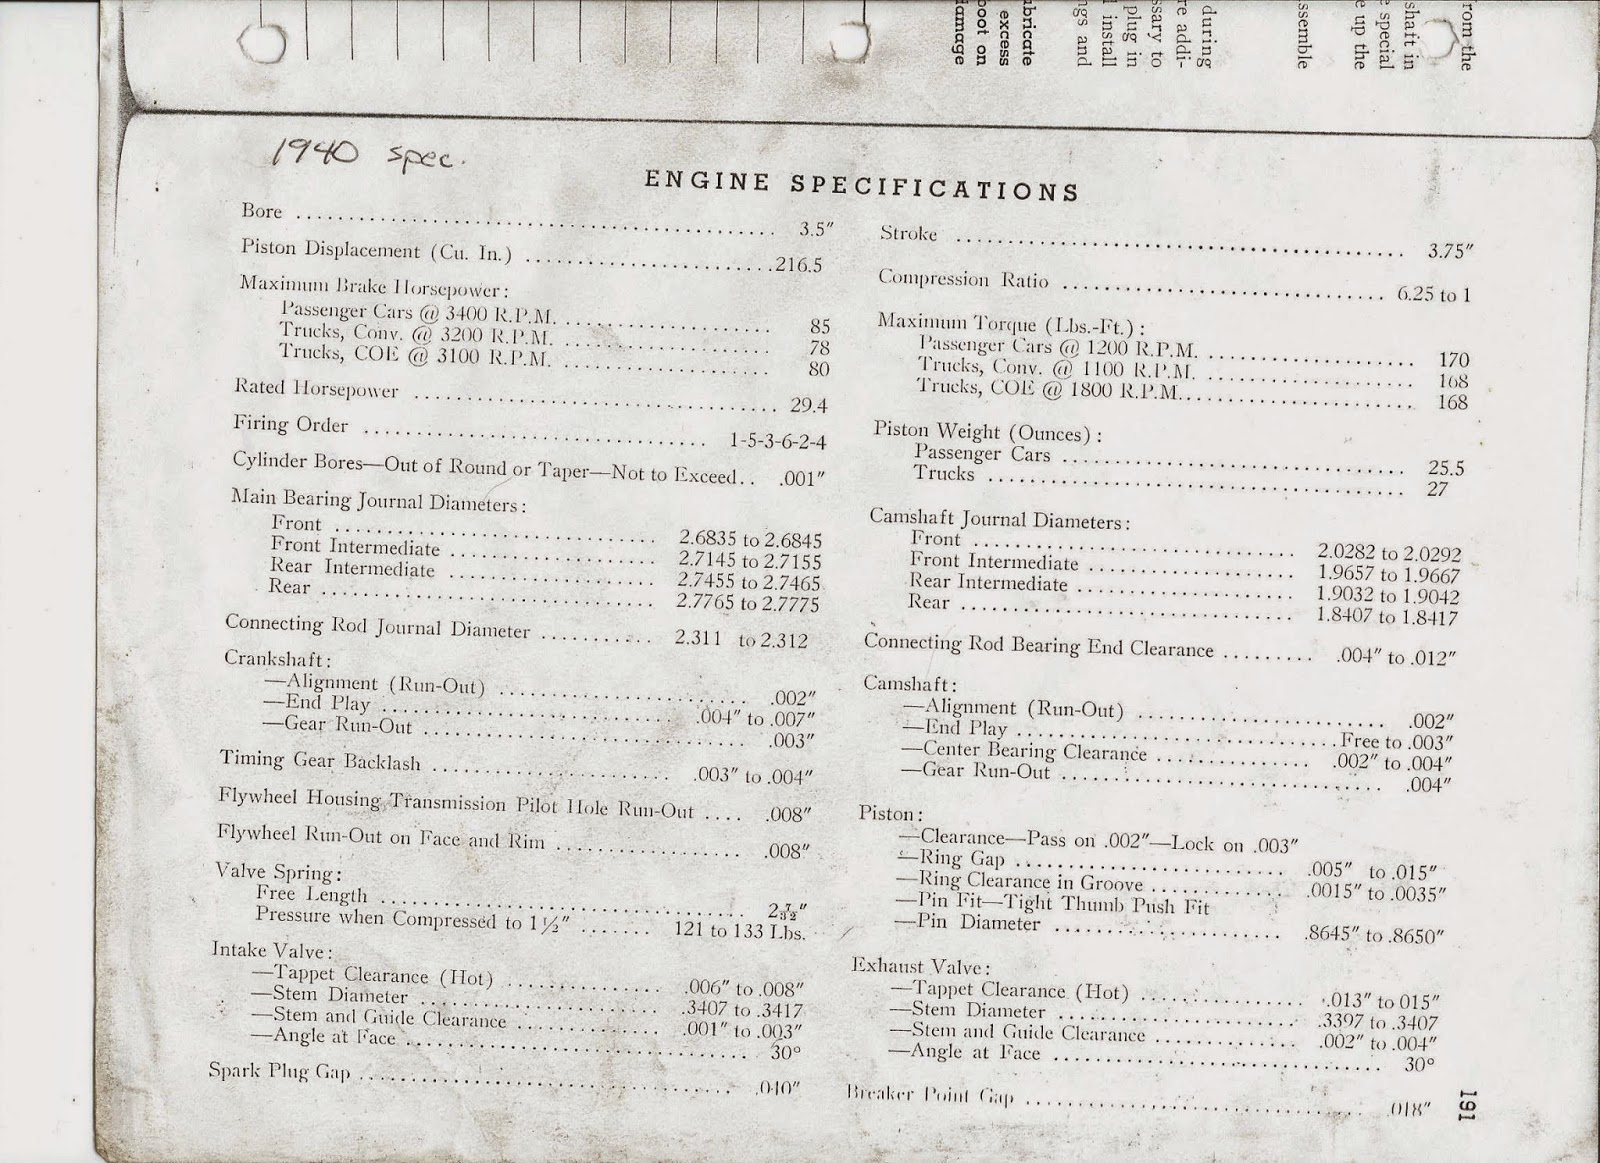 Chev 235 Guy Chevrolet Engine Specifications